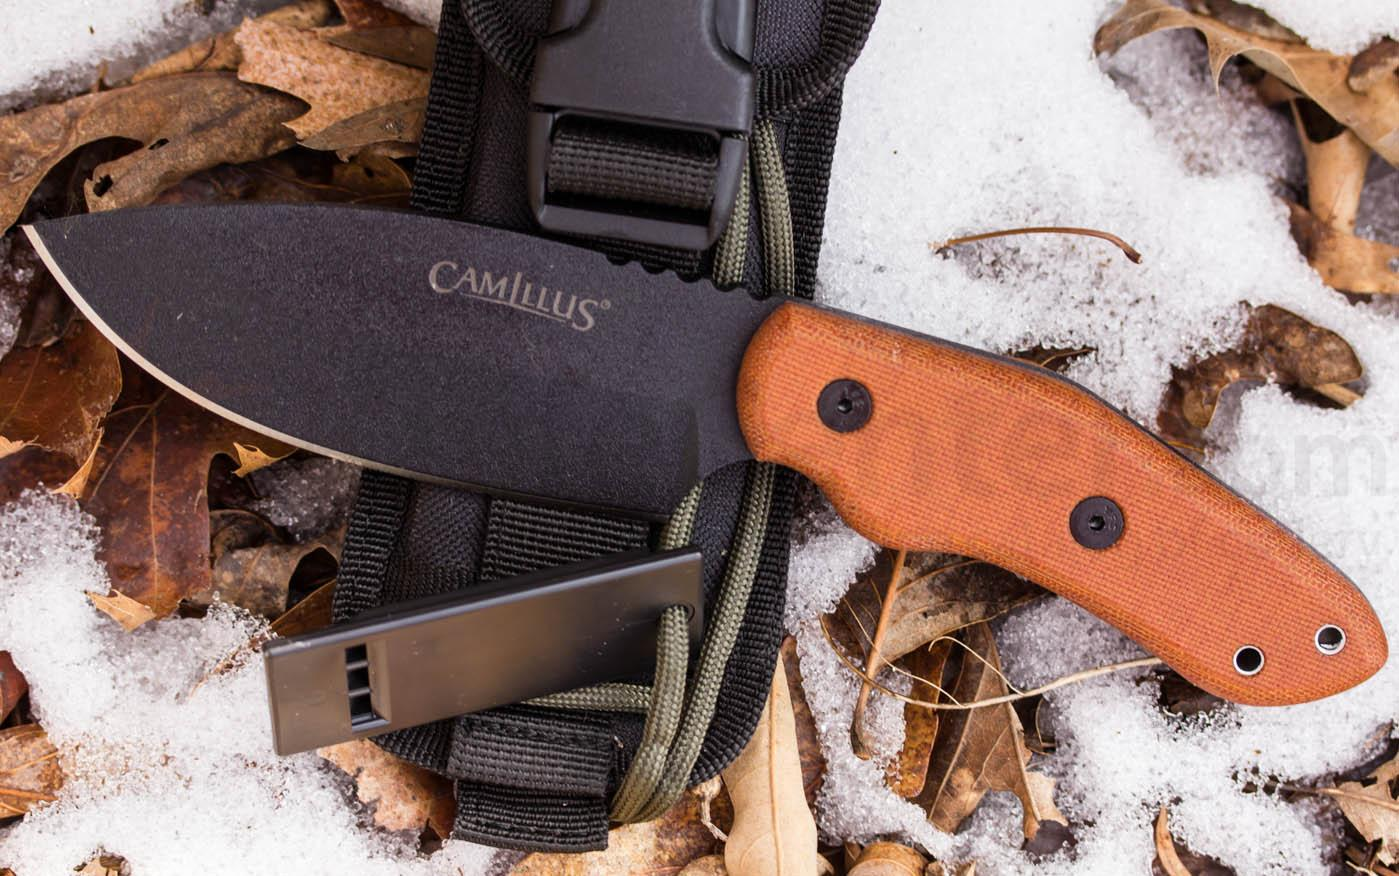 knives made in america camillus by tops knives 19182 ck 9 usa made combat knife